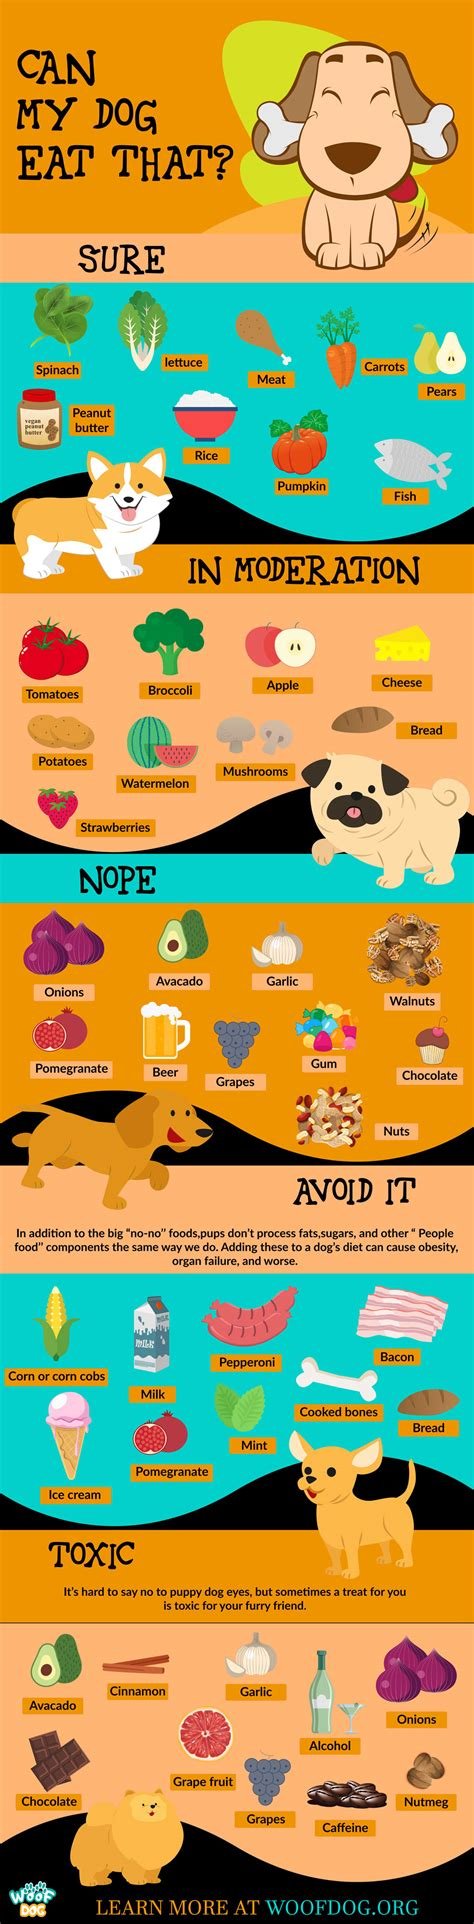 what can dogs eat 30 human foods dogs can and can t eat 11 toxic and dangerous